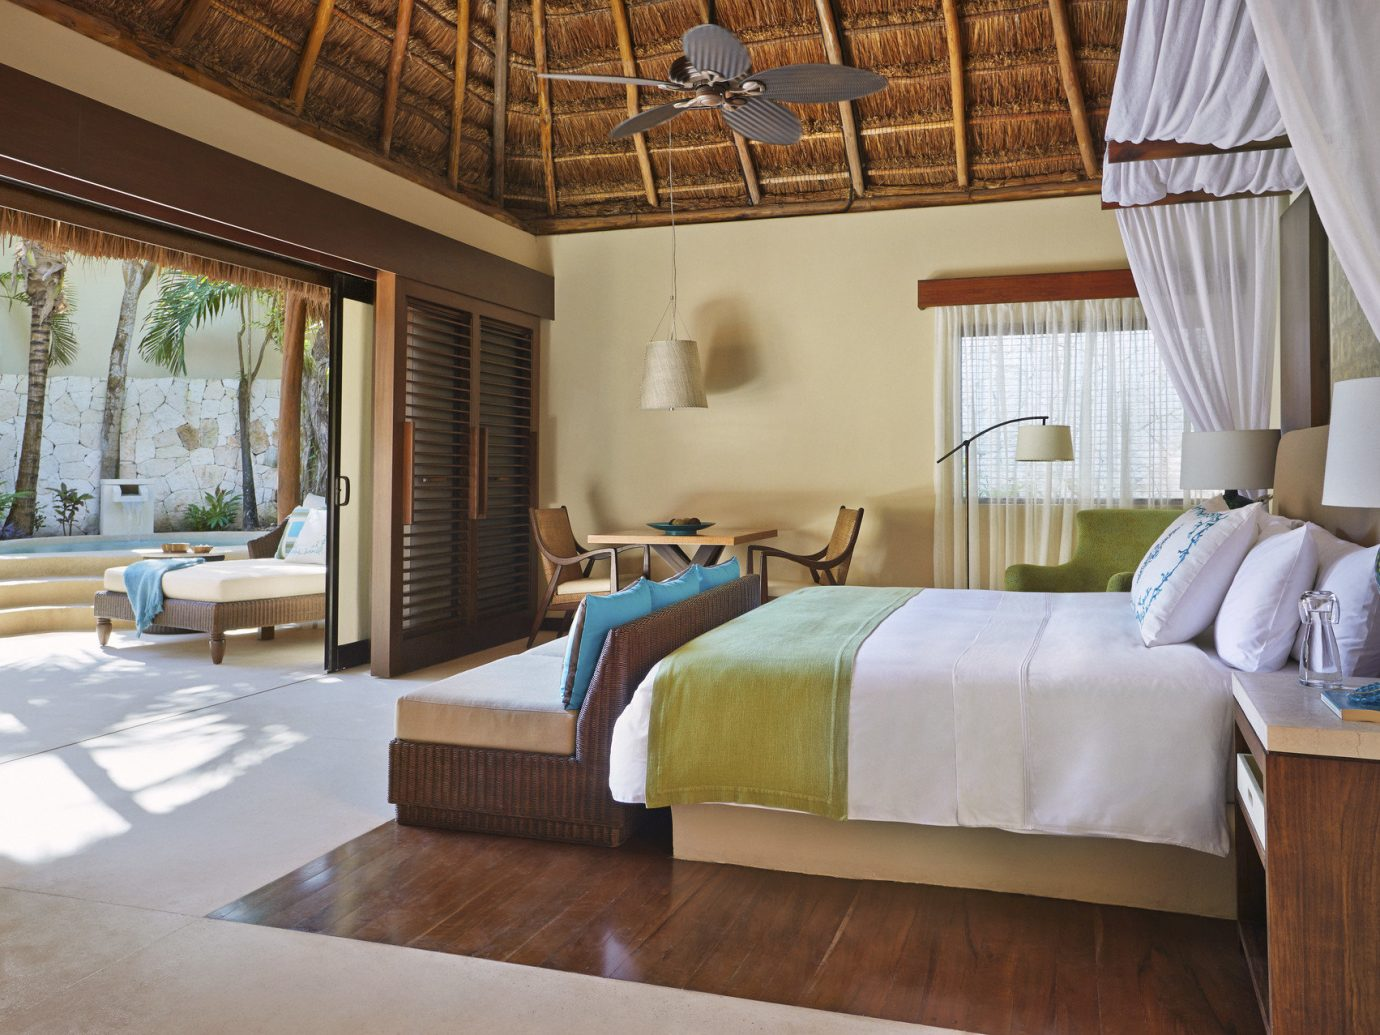 Beach Honeymoon Hotels Mexico Romance Tulum indoor floor room property estate window bed Bedroom home cottage real estate Villa Suite interior design Resort hardwood living room farmhouse furniture decorated